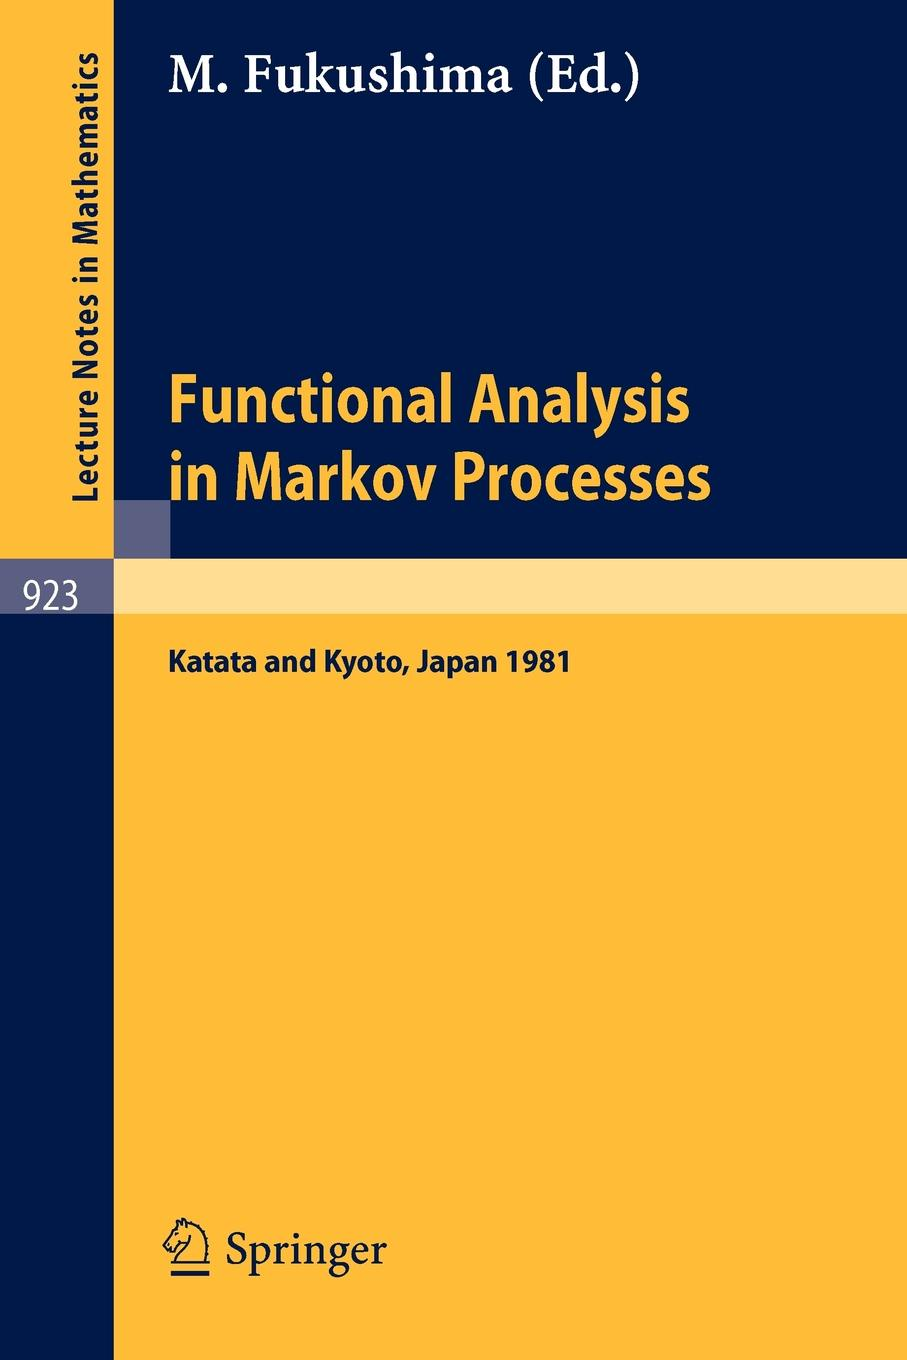 Functional Analysis in Markov Processes. Proceedings of the International Workshop Held at Katata, Japan, August 21-26, 1981 and of the International Conference Held at Kyoto, Japan, August 27-29, 1981 цена и фото